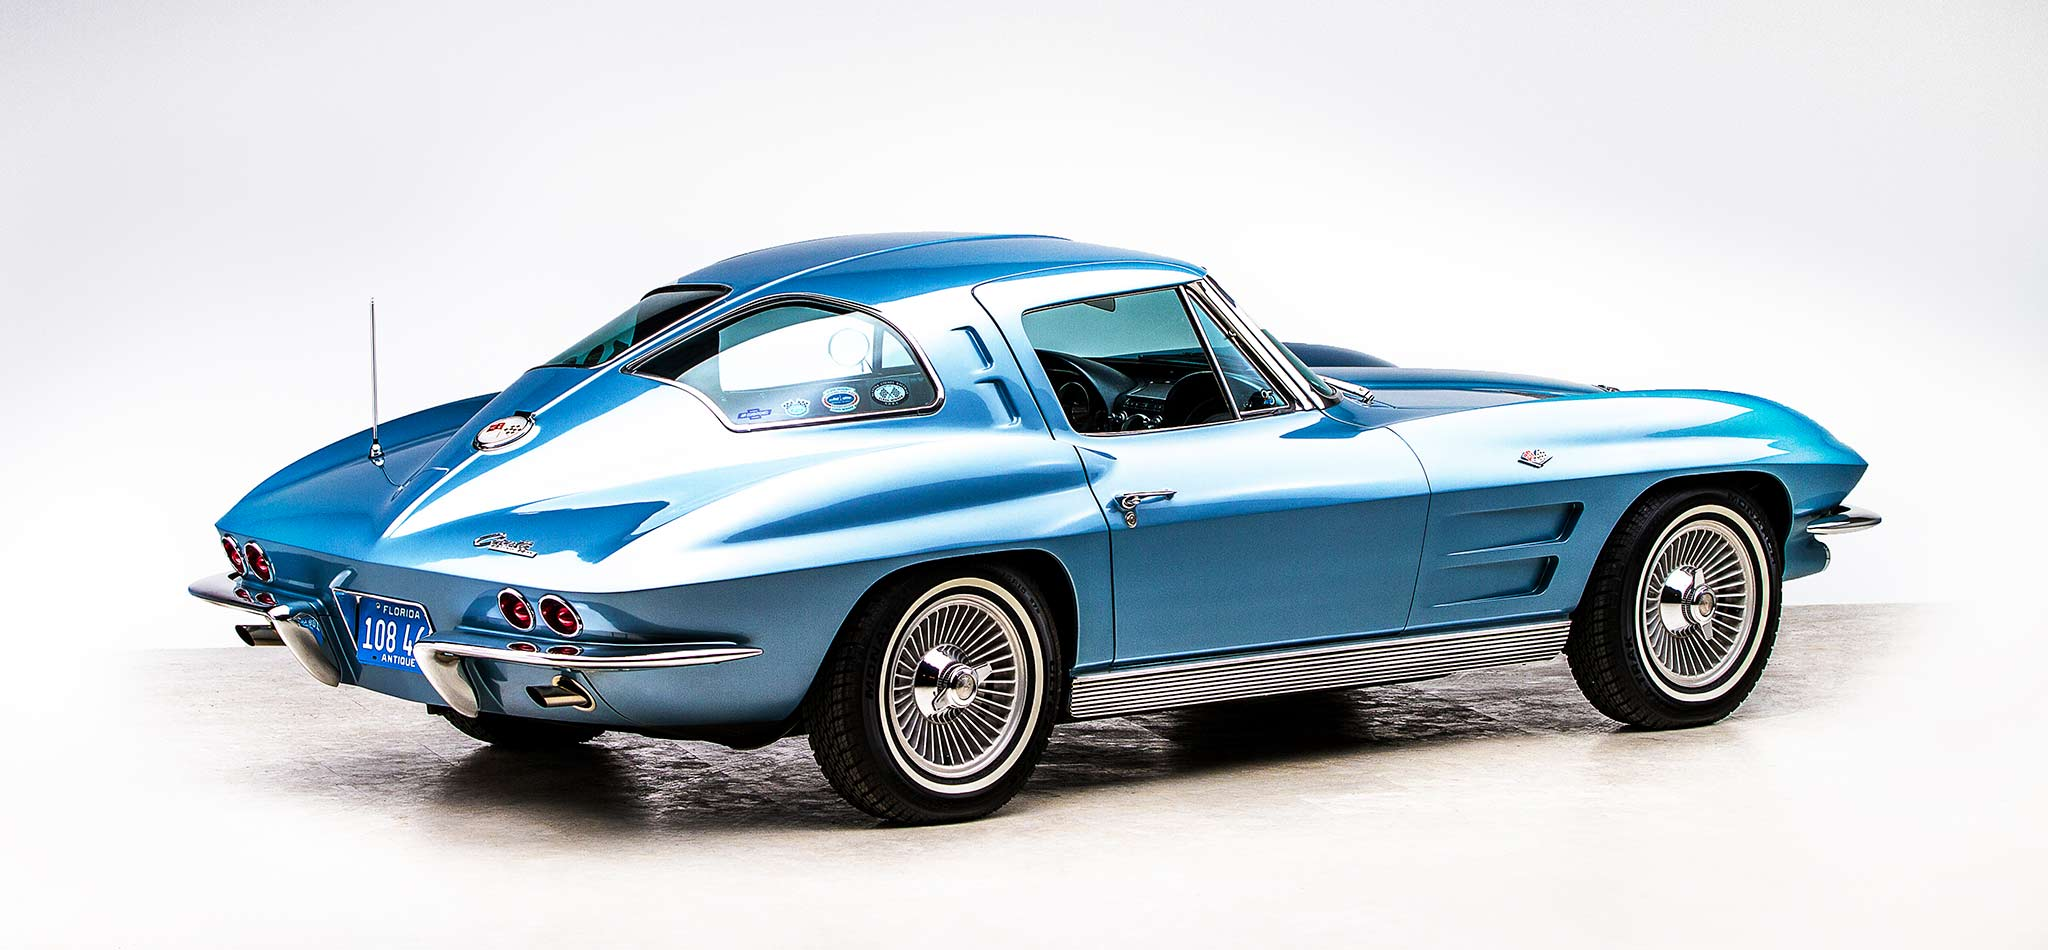 Three Things To Know About The Split-Window Corvette |1963 Corvette Split Window Stingray